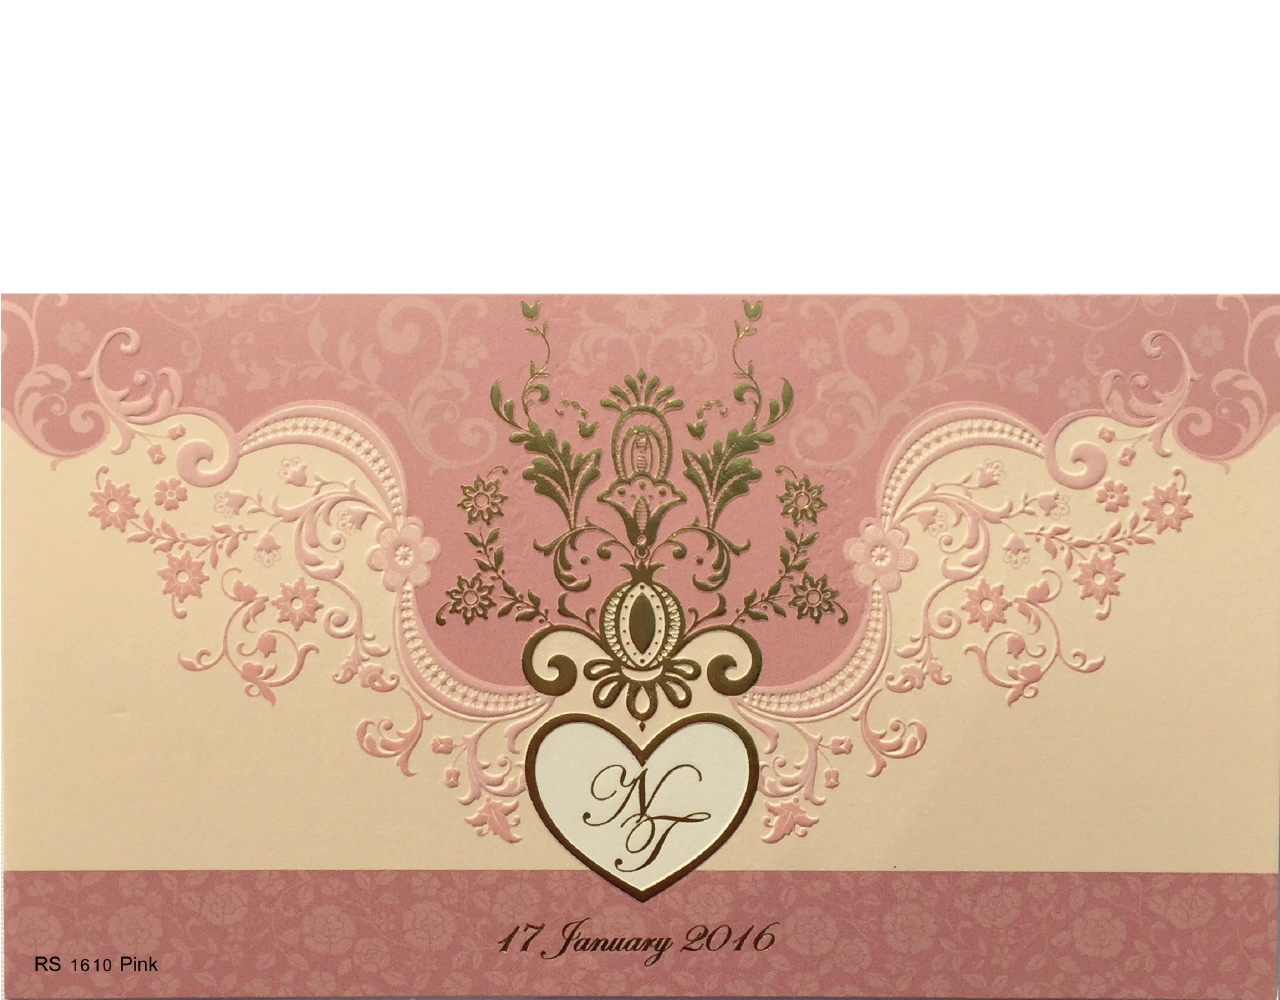 wedding card 4×7.5 inch RS 1610